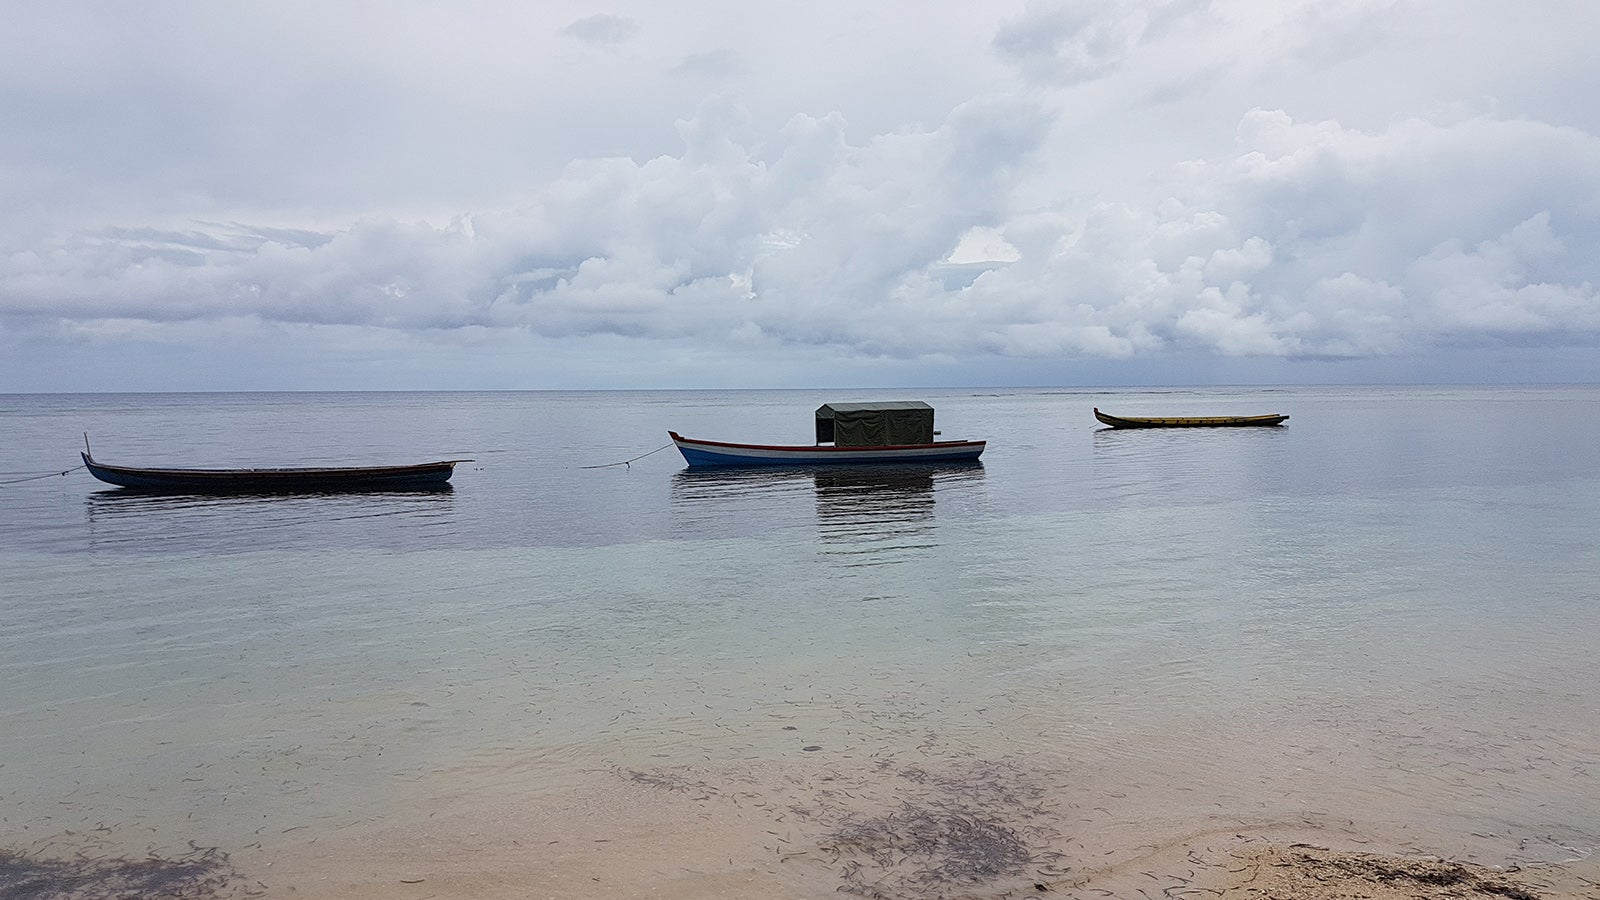 Beach and local fishing boats in Enggano